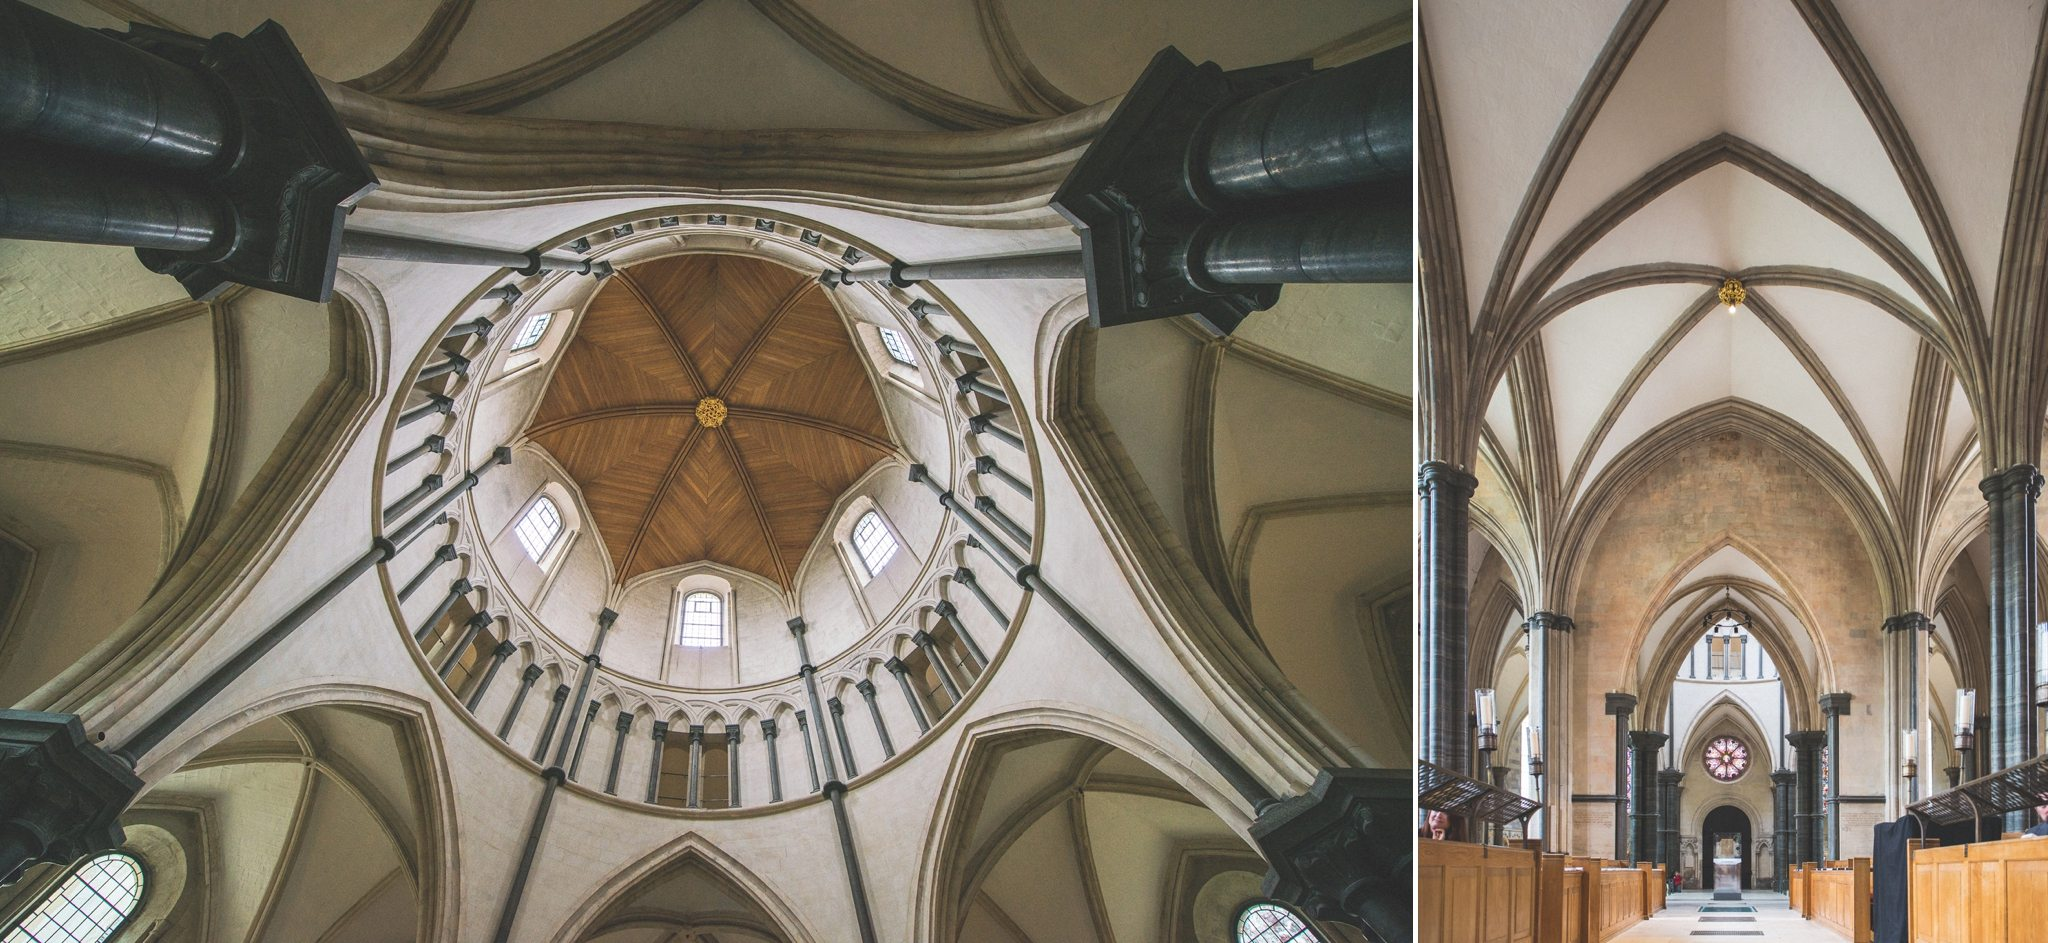 Temple church dome wedding church